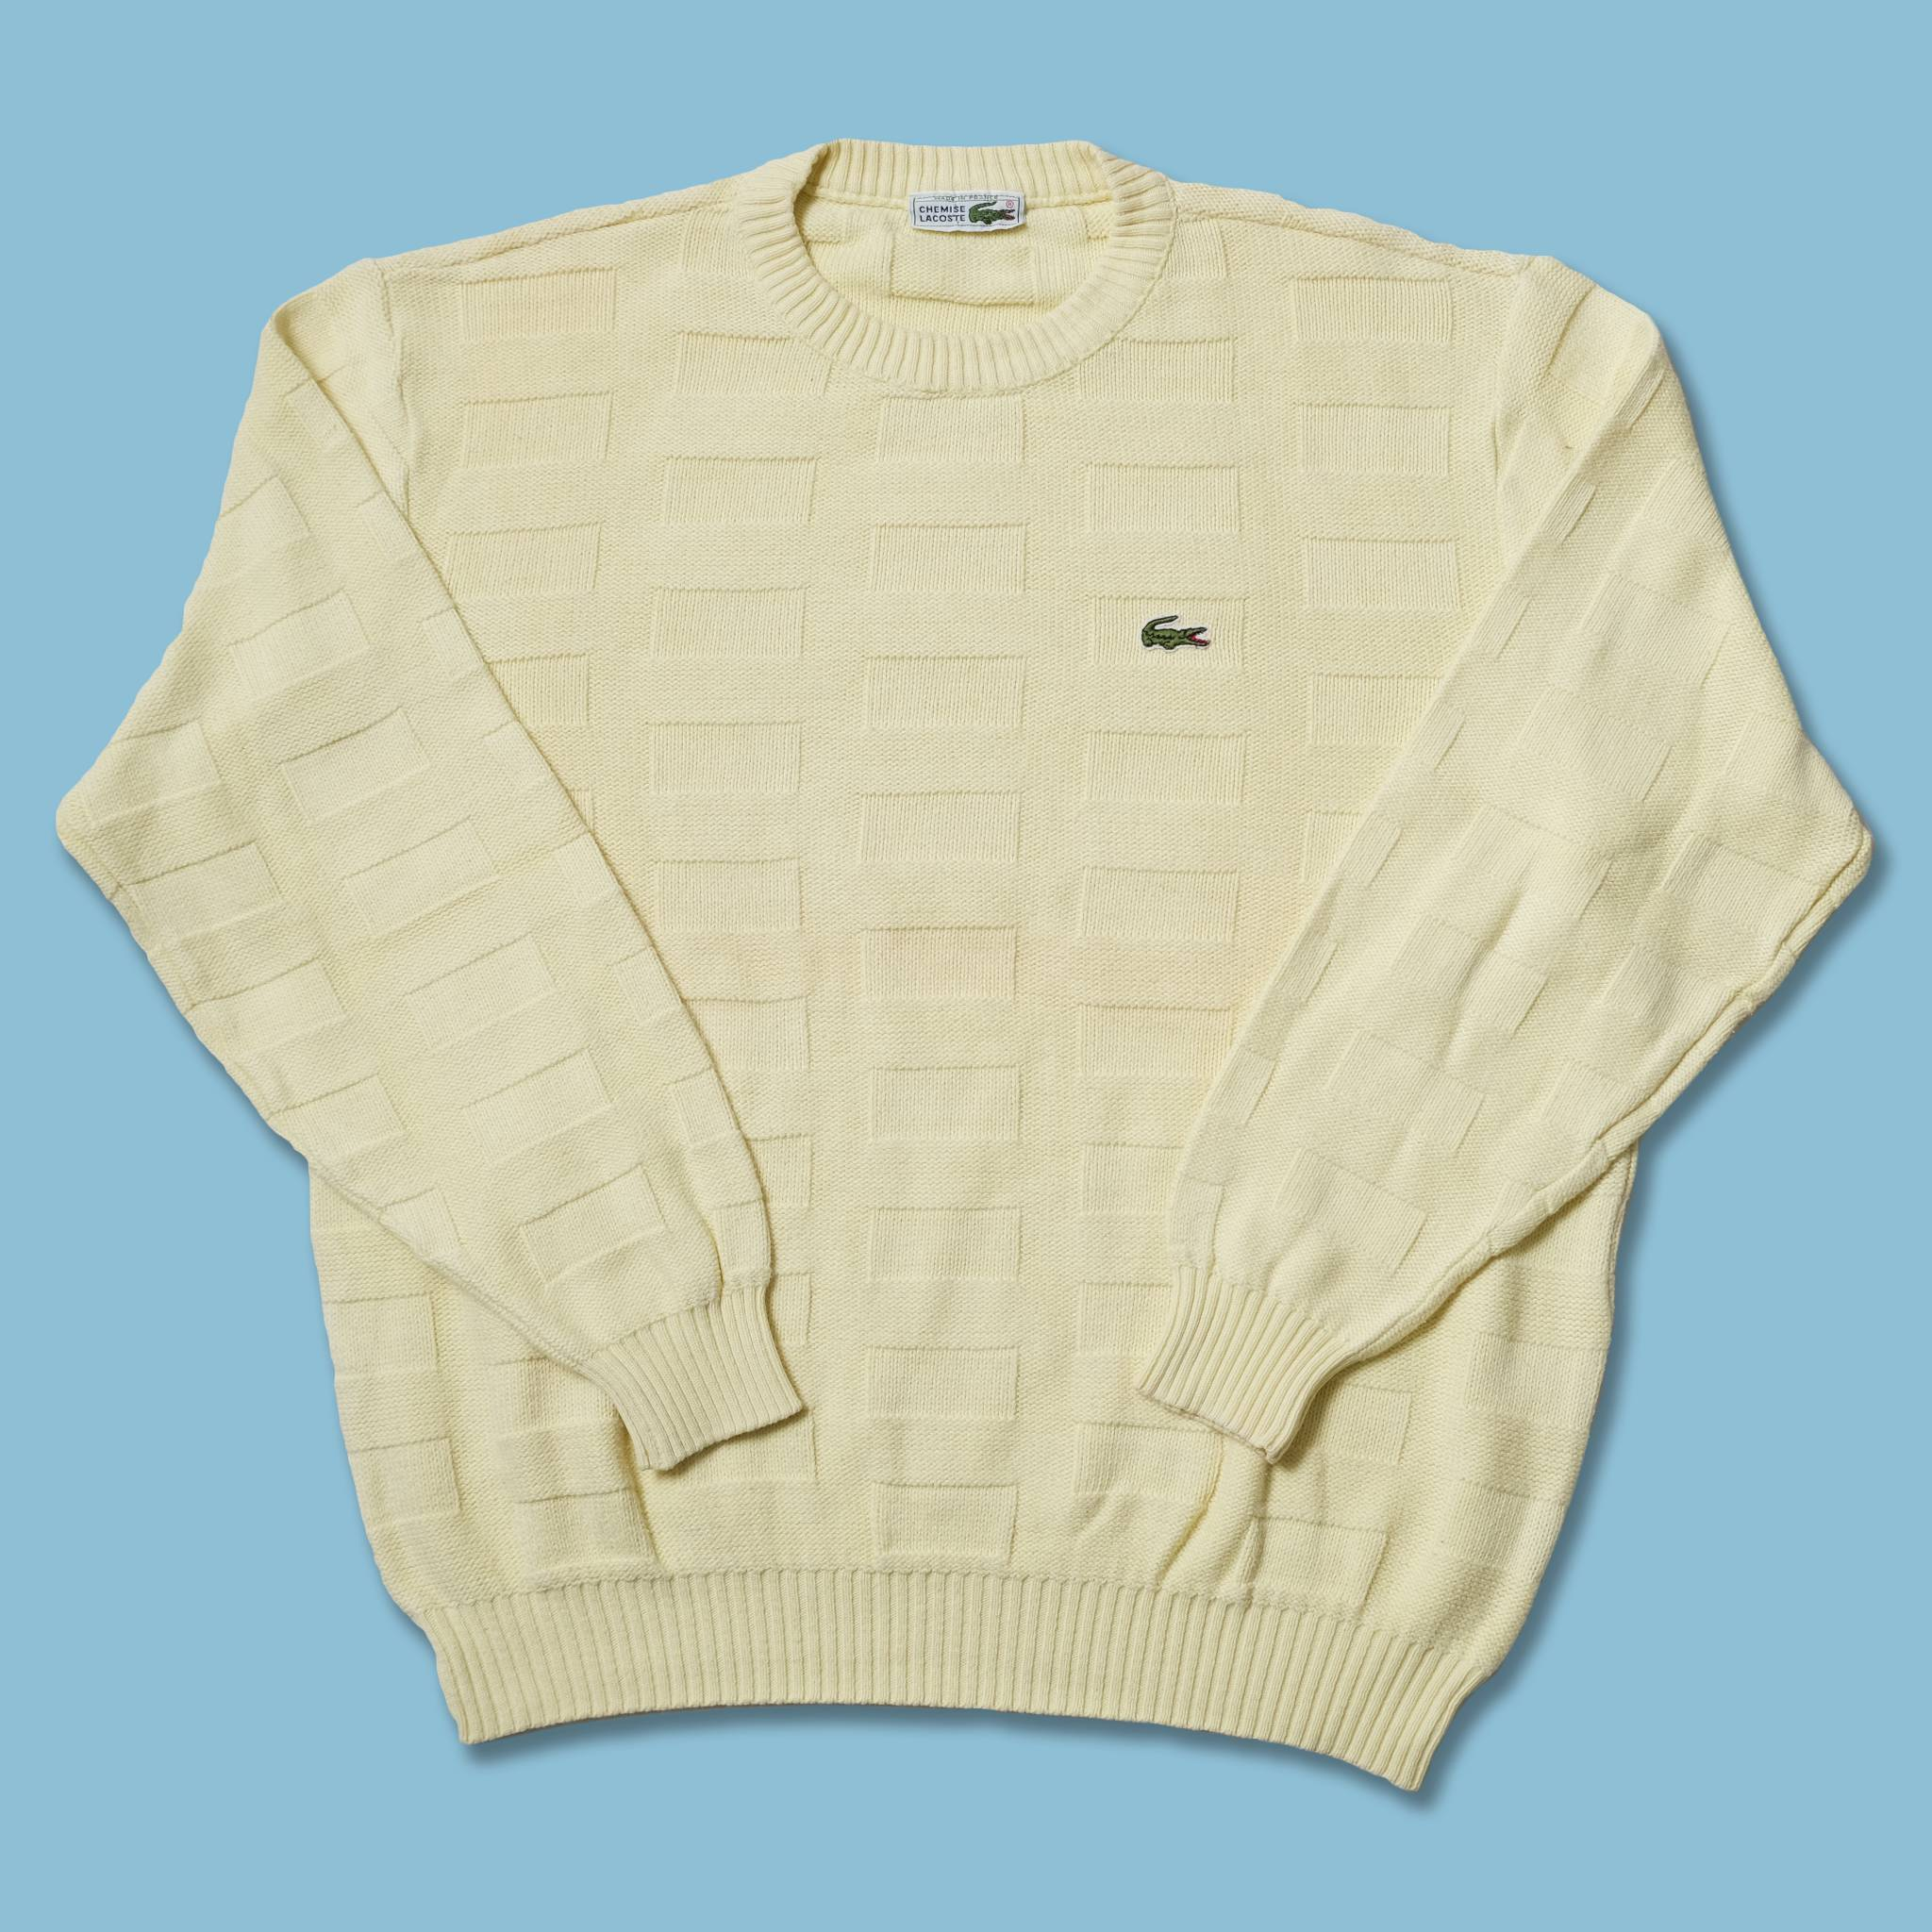 Vintage Lacoste Knit Sweater Small / Medium